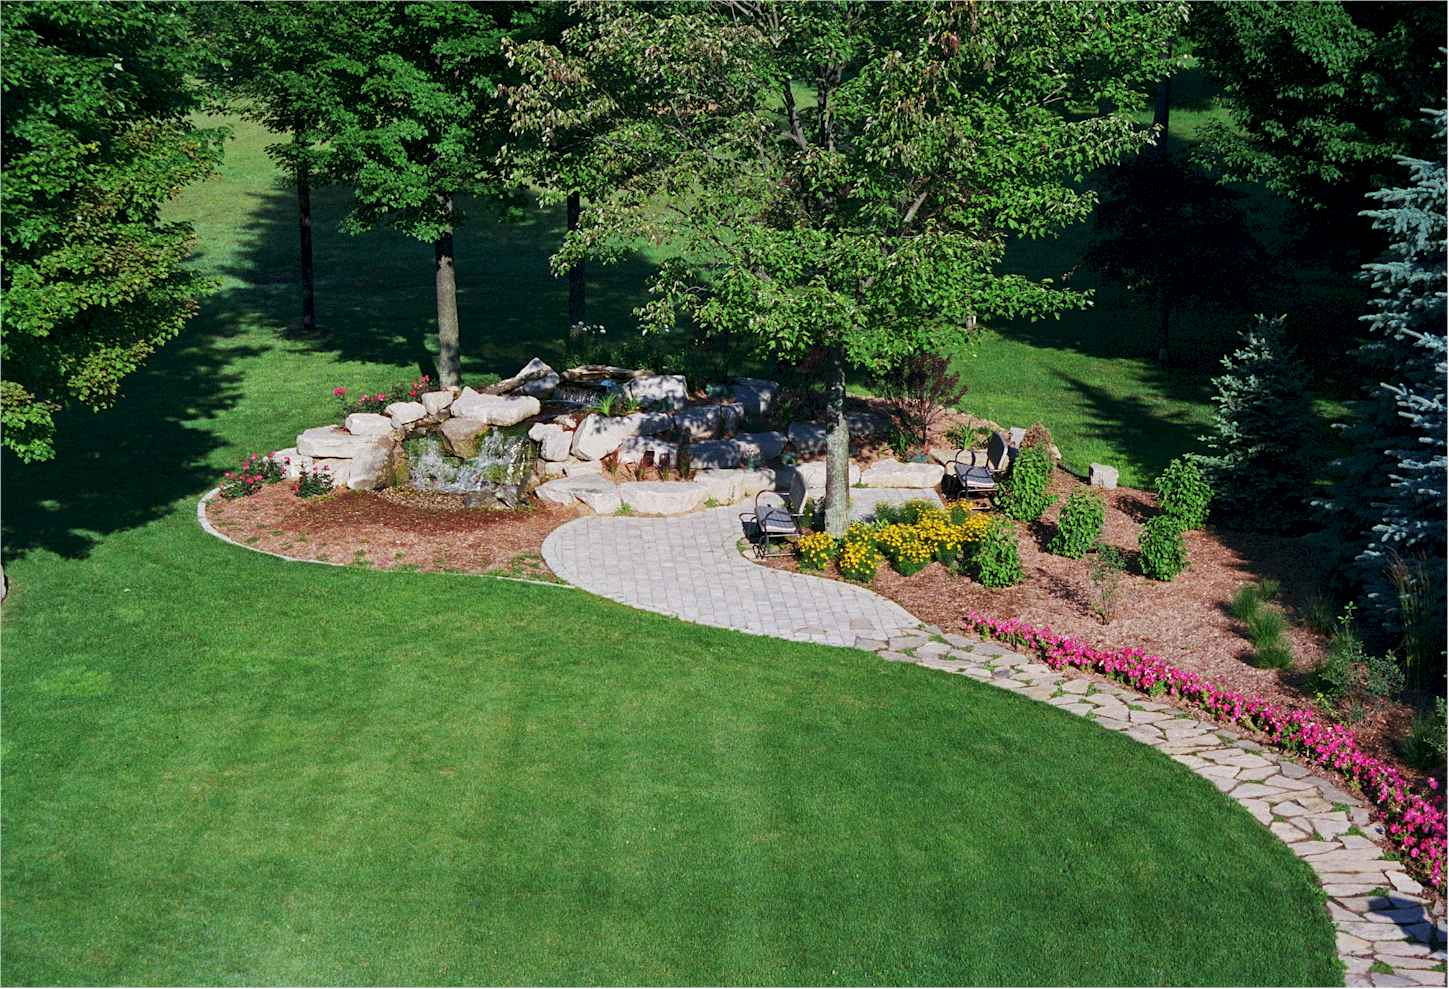 Smothery Homes Tx Homes Landscape S In A Keys To Landscaping outdoor Landscape Images For Homes